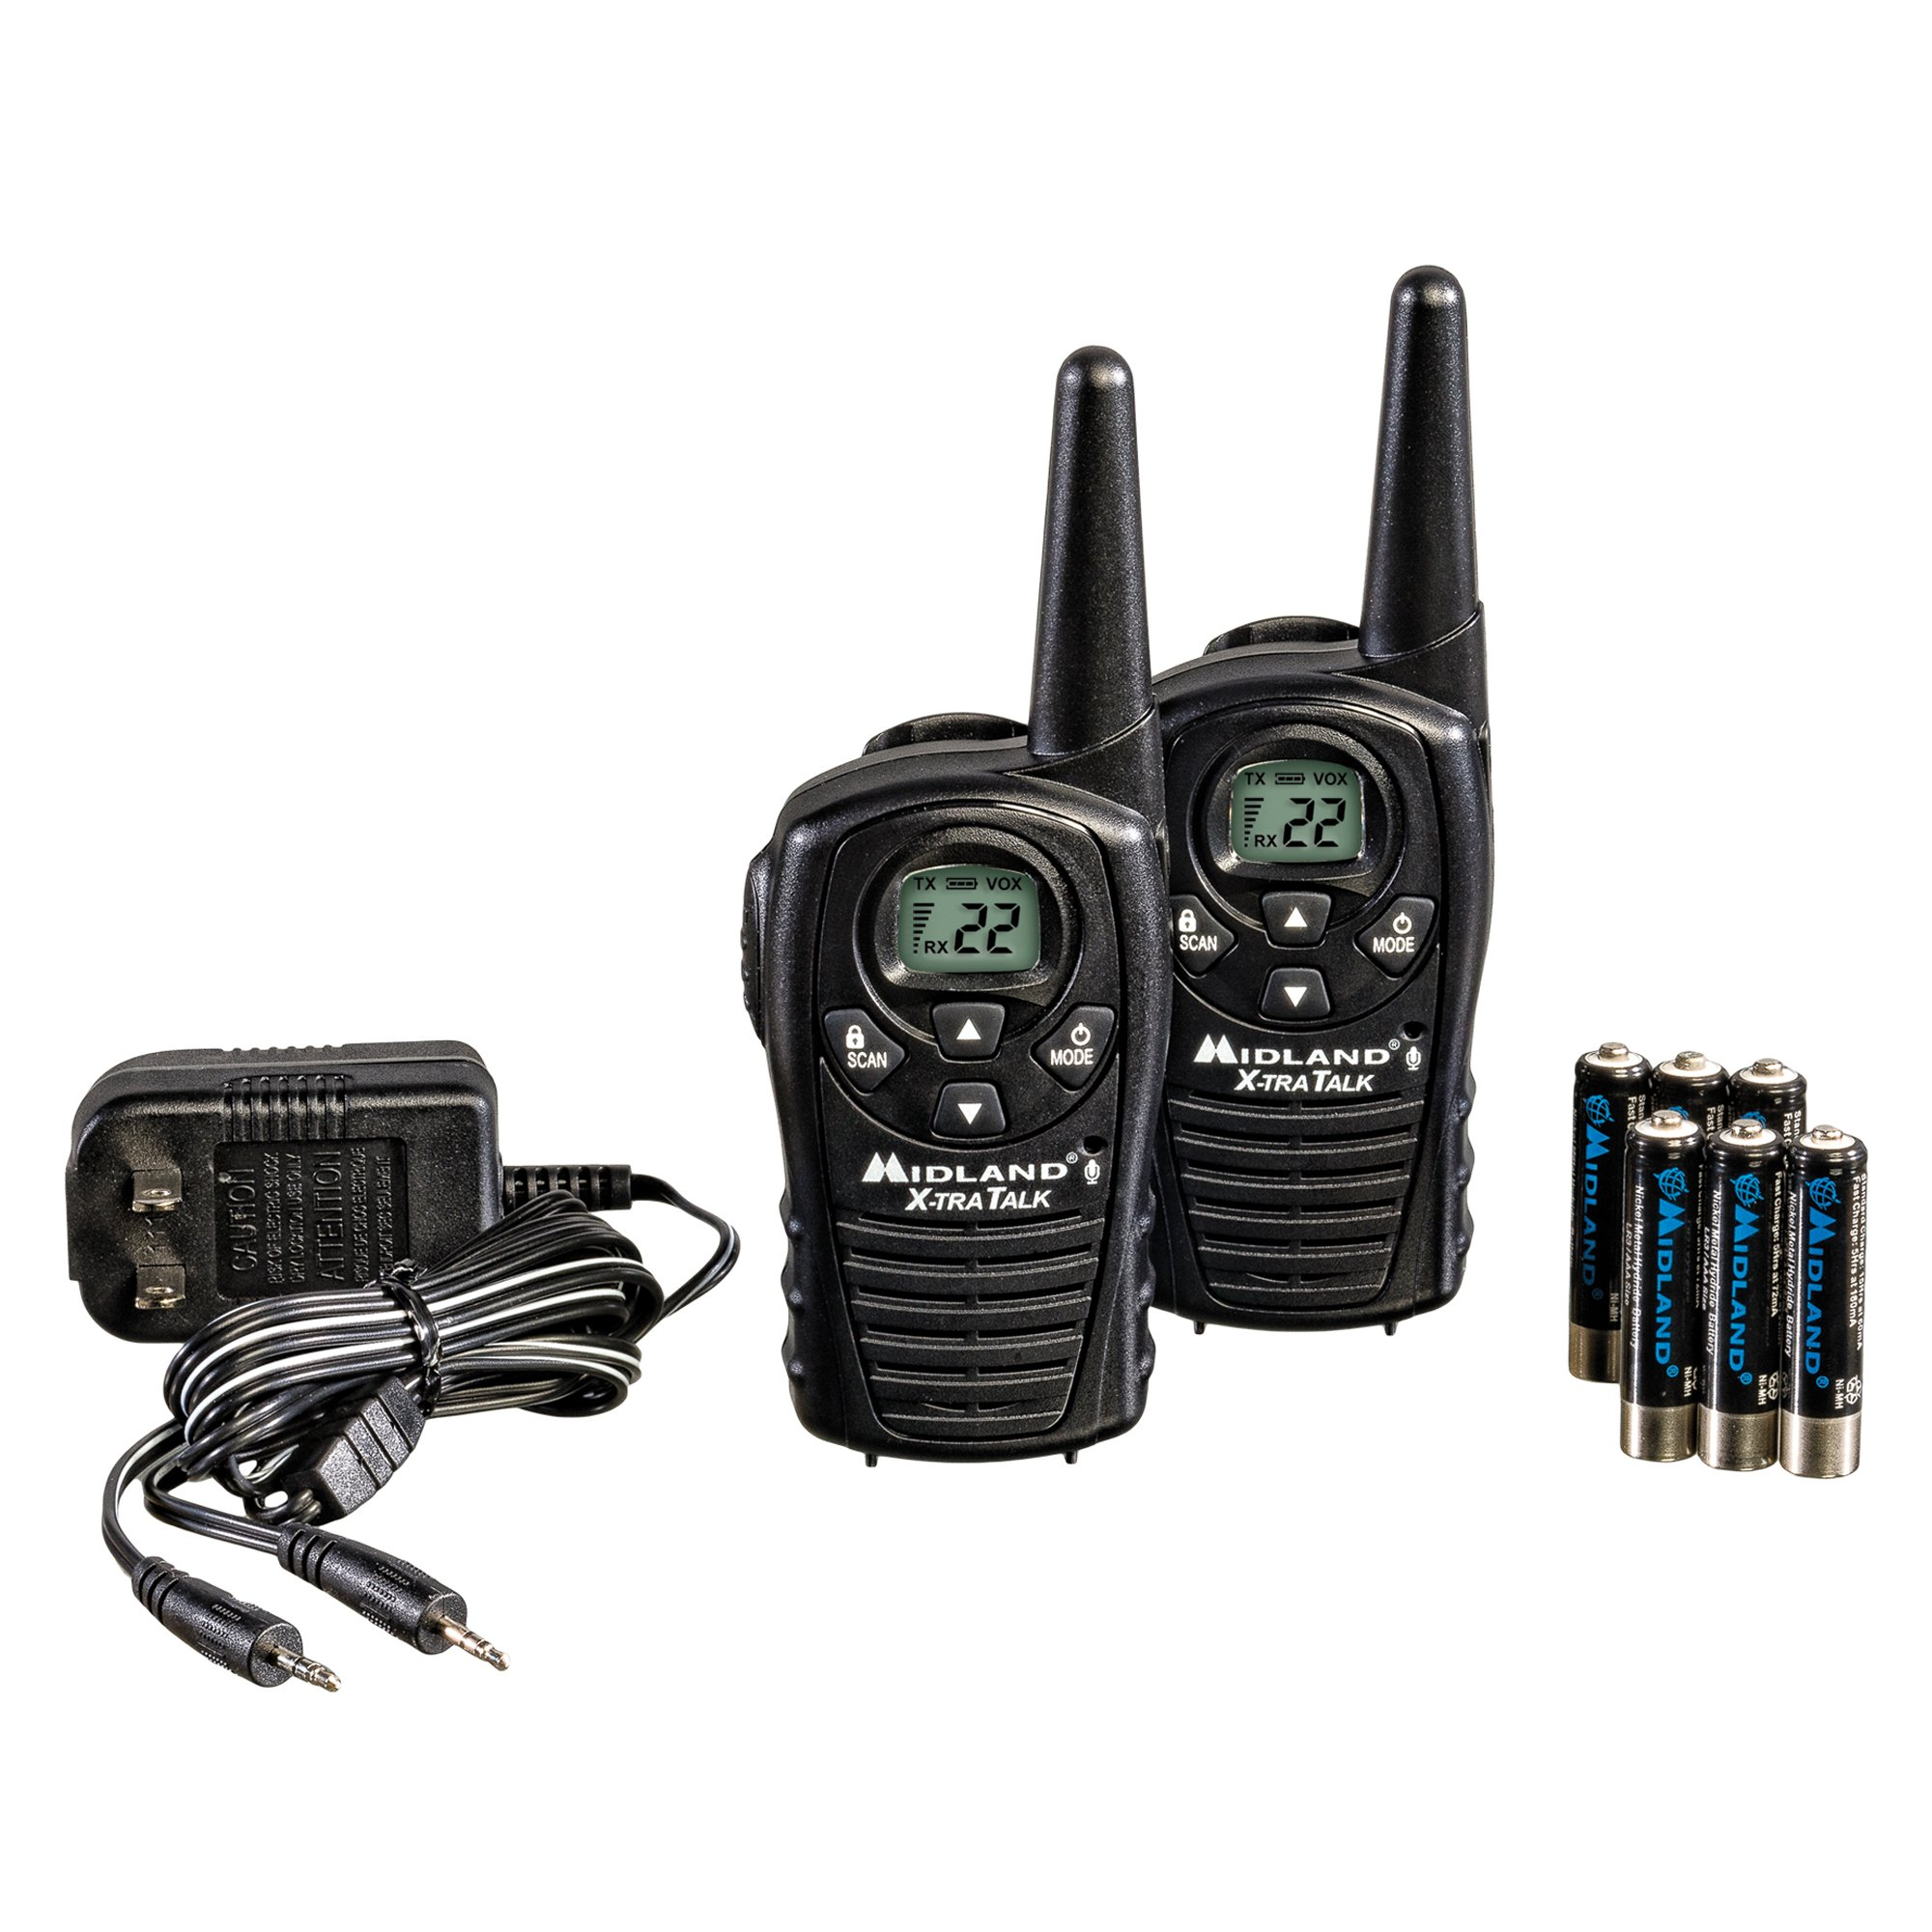 Midland - LXT118VP, 22 Channel FRS Two-Way Radio with Channel Scan - Up to 18 Mile Range Walkie Talkie, Hands-Free VOX, Water Resistant (Pair Pack) (Black)